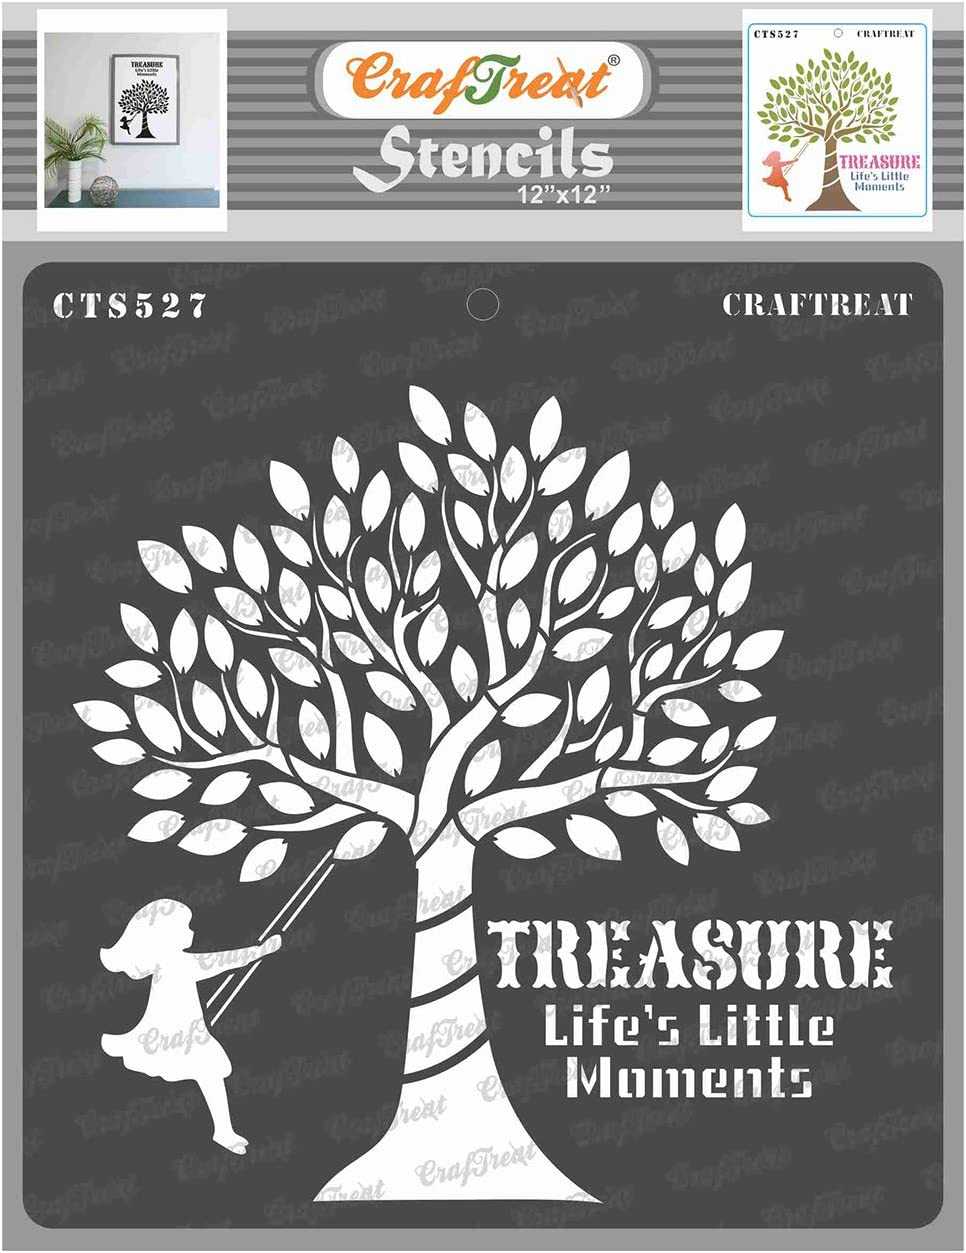 CrafTreat Stencils for painting on Wood, Canvas, Paper, Fabric, Floor, Wall and Tile - Life's Little Moments - 12x12 Inches - Reusable DIY Art and Craft Stencils for Home Decor - Stencils of Trees